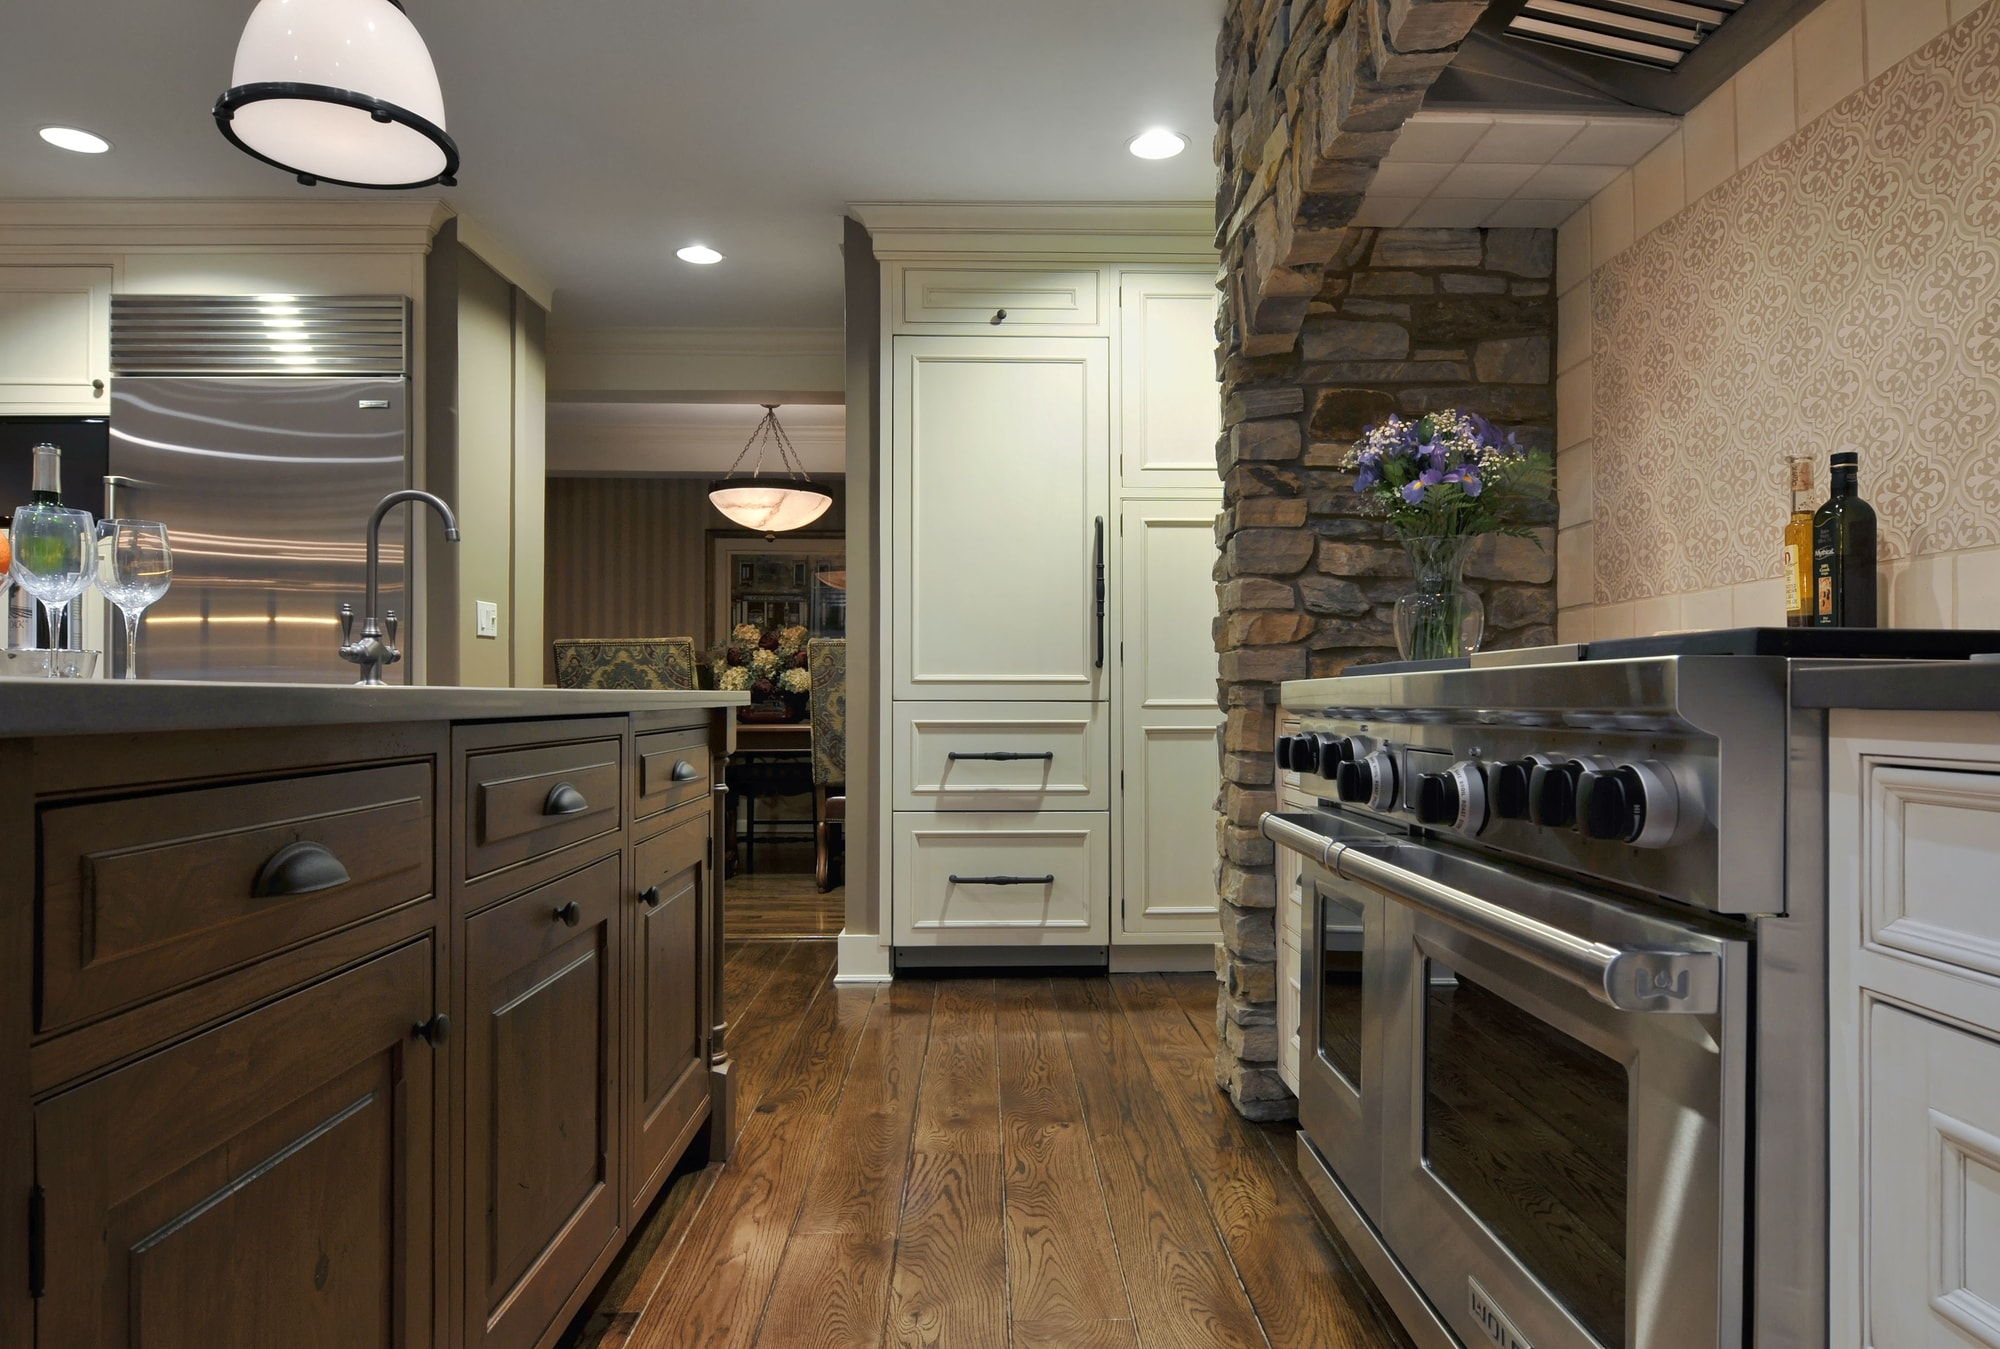 Traditional style kitchen with wooden cabinet and drawers